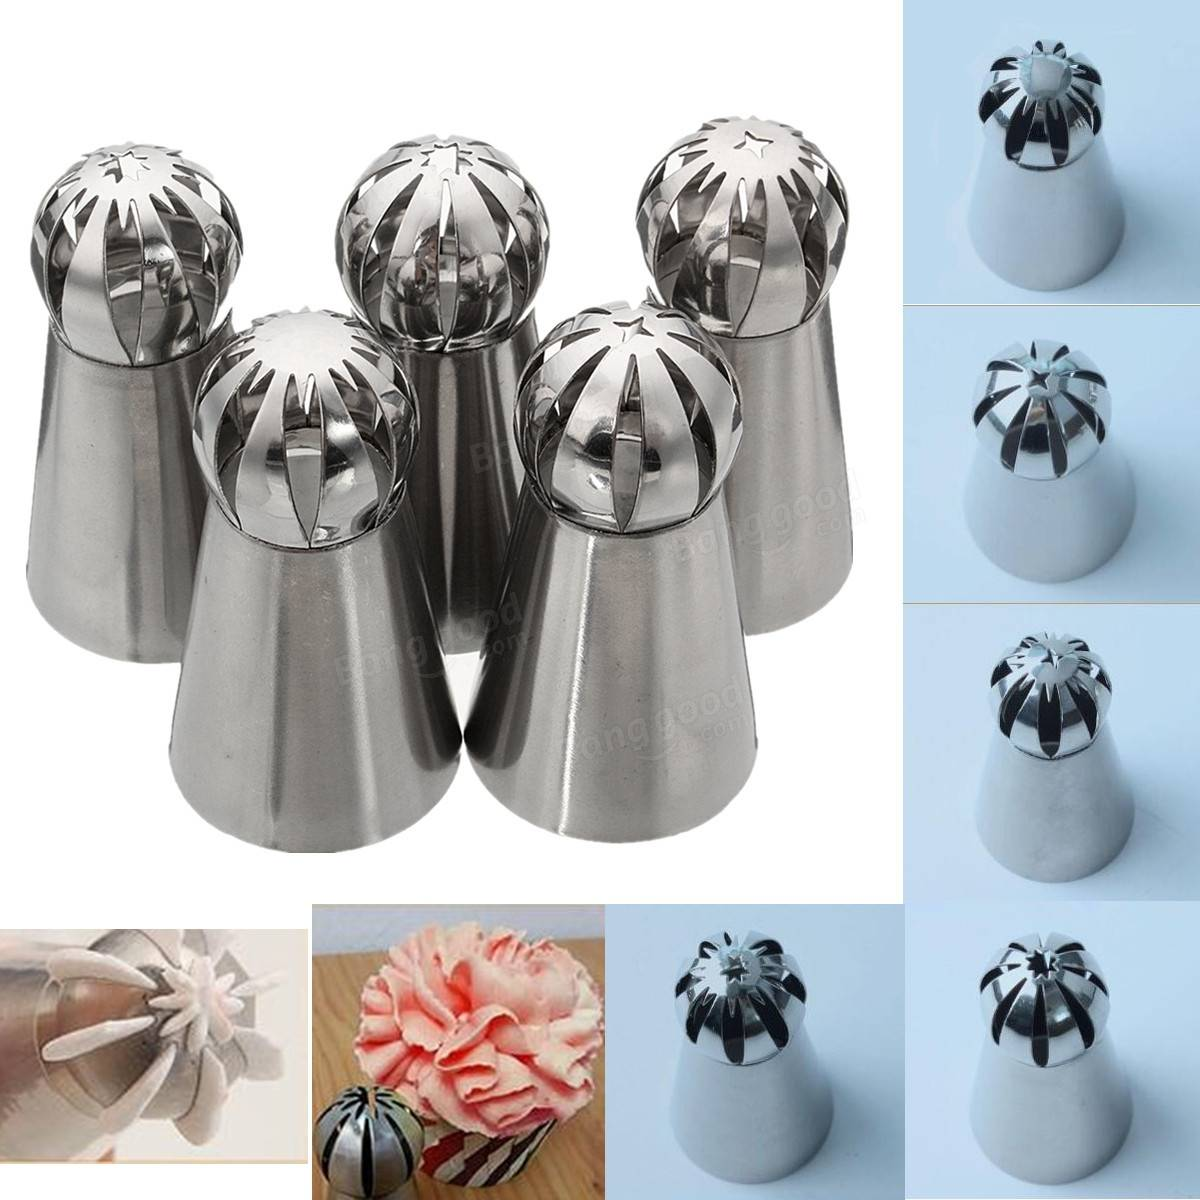 5pcs Stainless Steel Sphere Ball Icing Piping Nozzle Cupcake Pastry Tips Decor